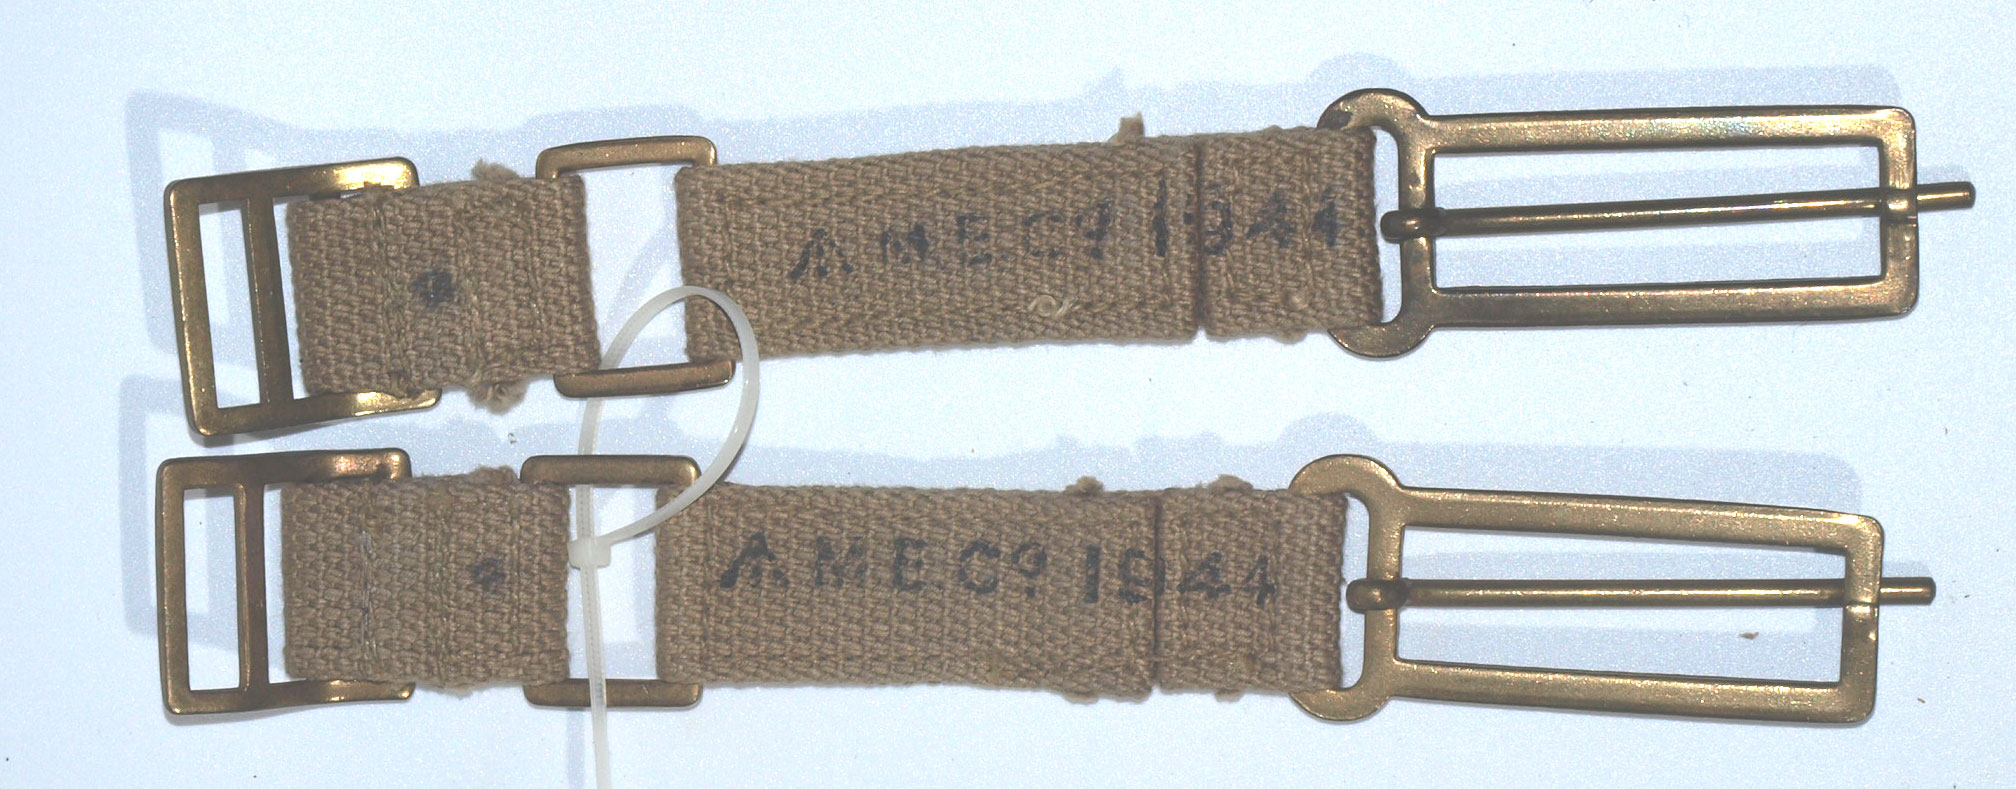 37 Pattern Brace (Strap) Attachments-matching pair dated 1944